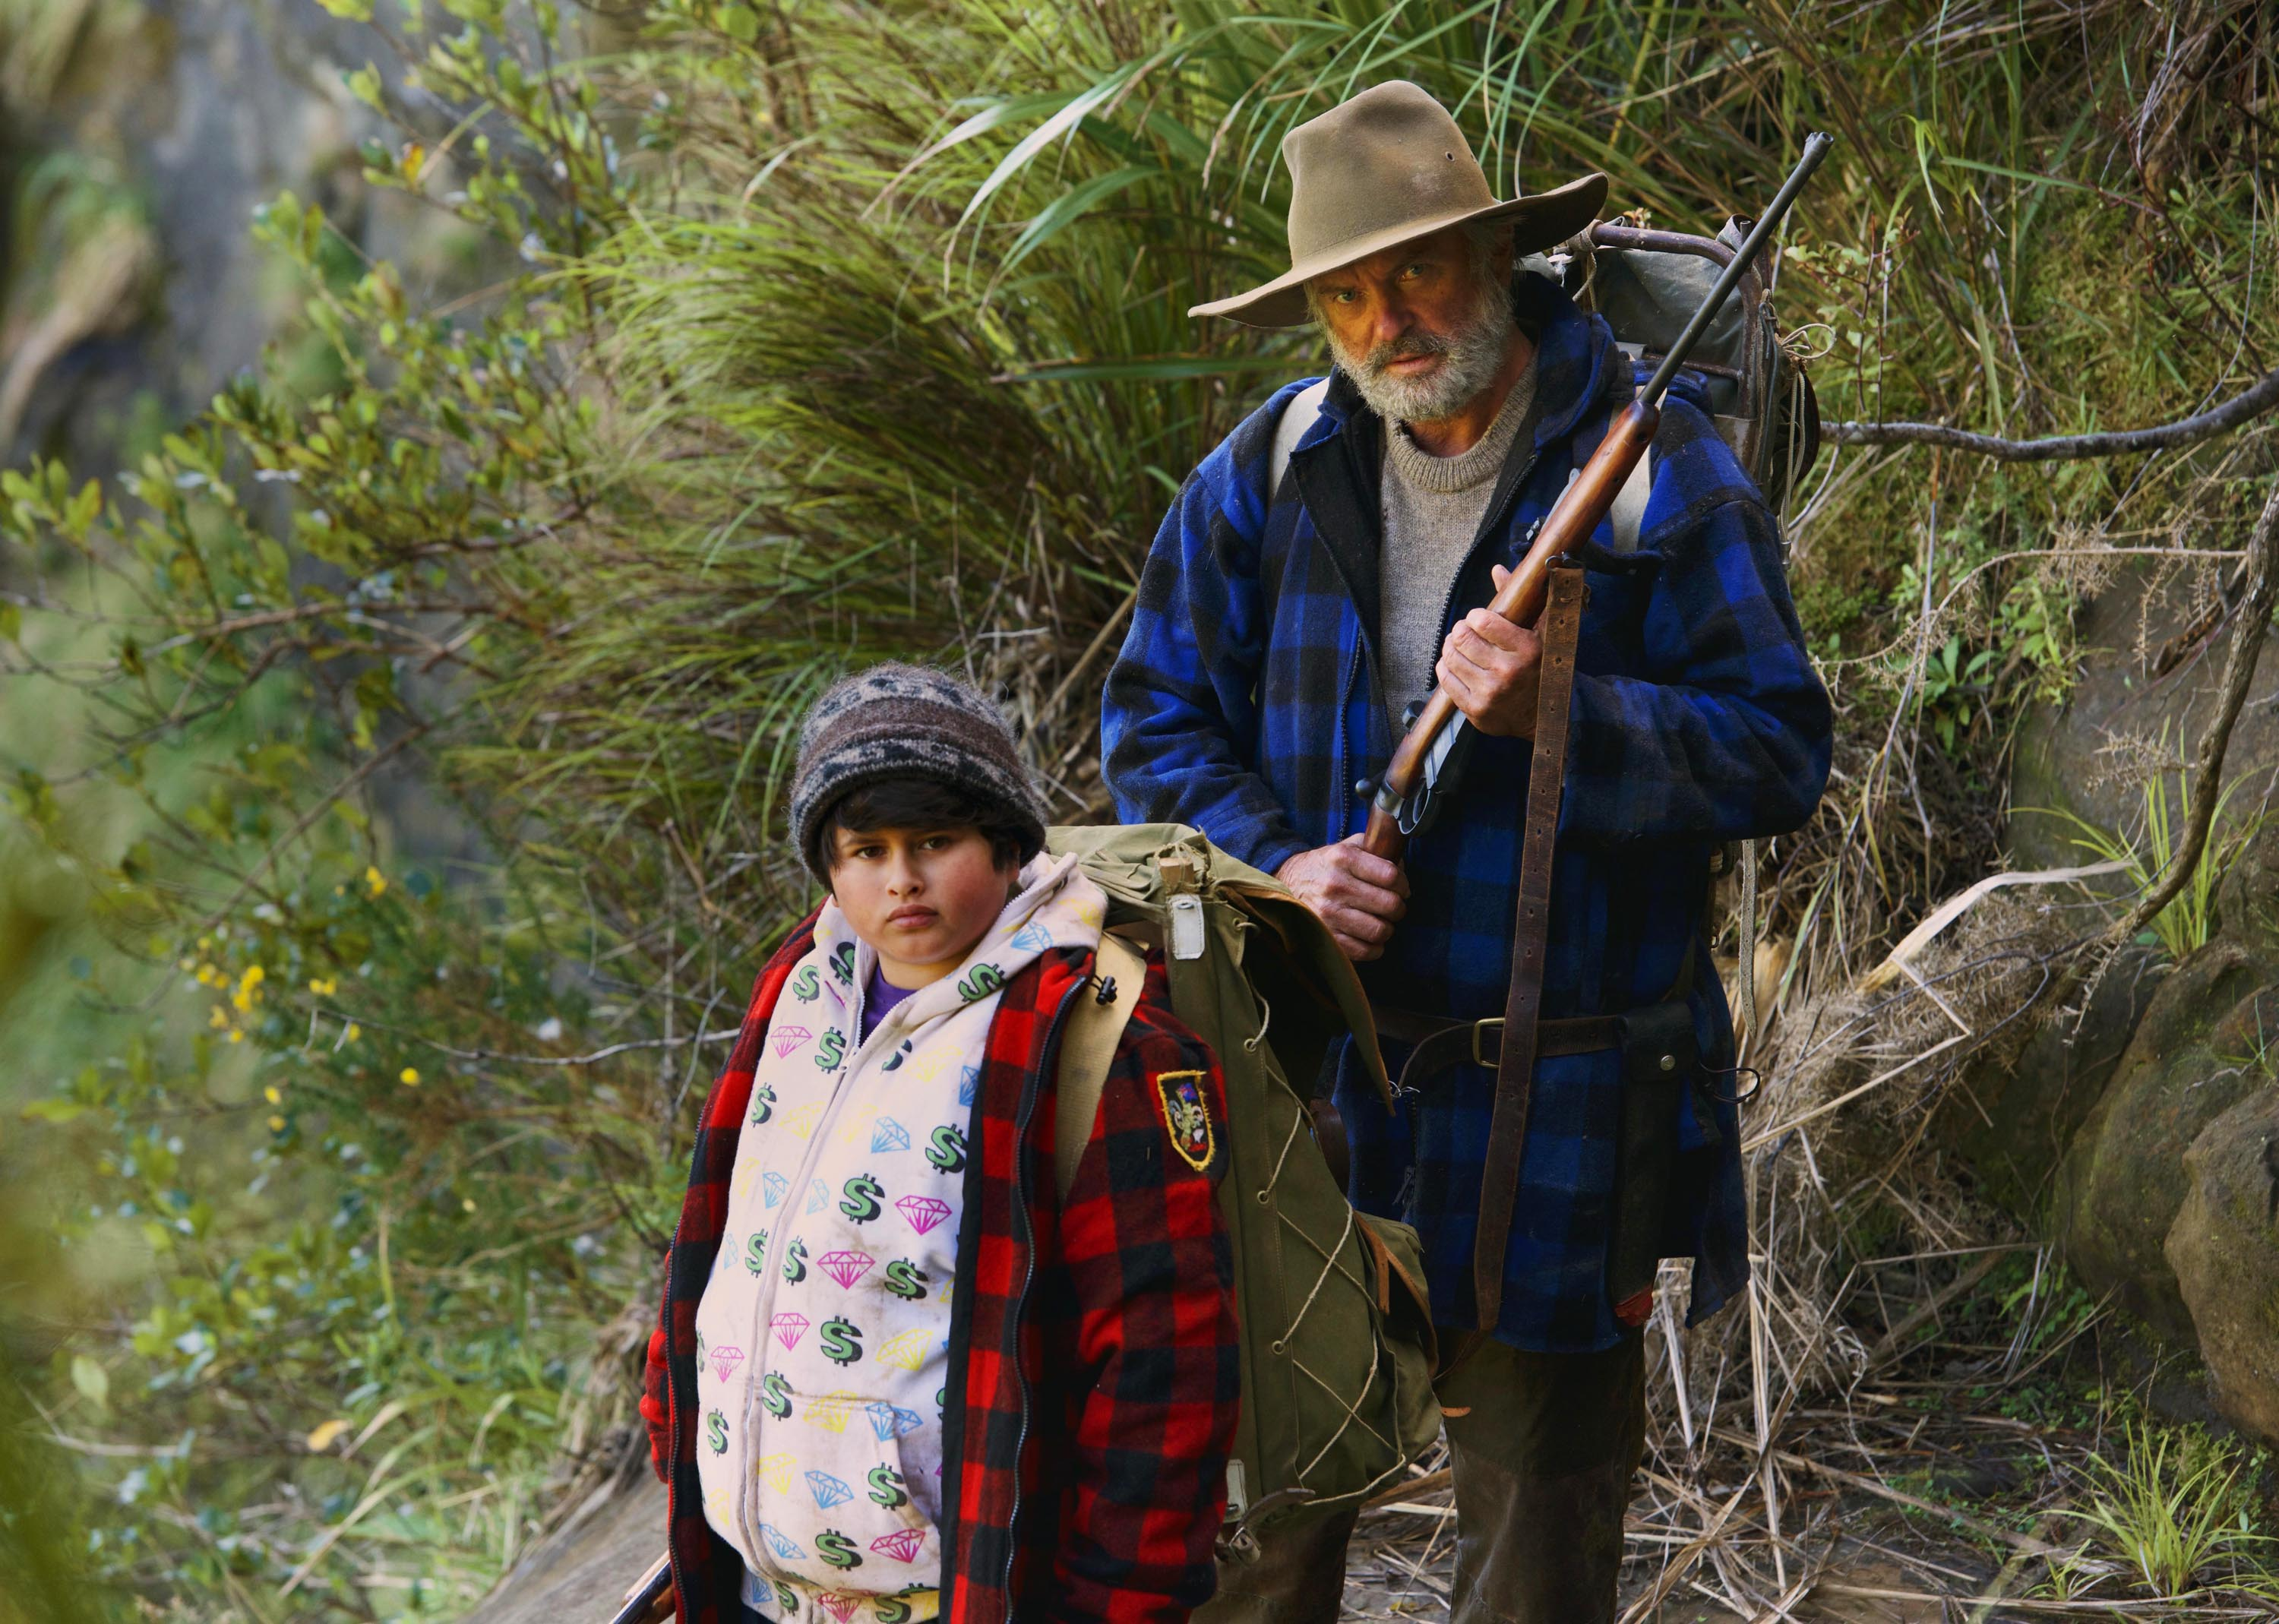 Julian Dennison, left, and Sam Neill, right, in Hunt For The Wilderpeople.